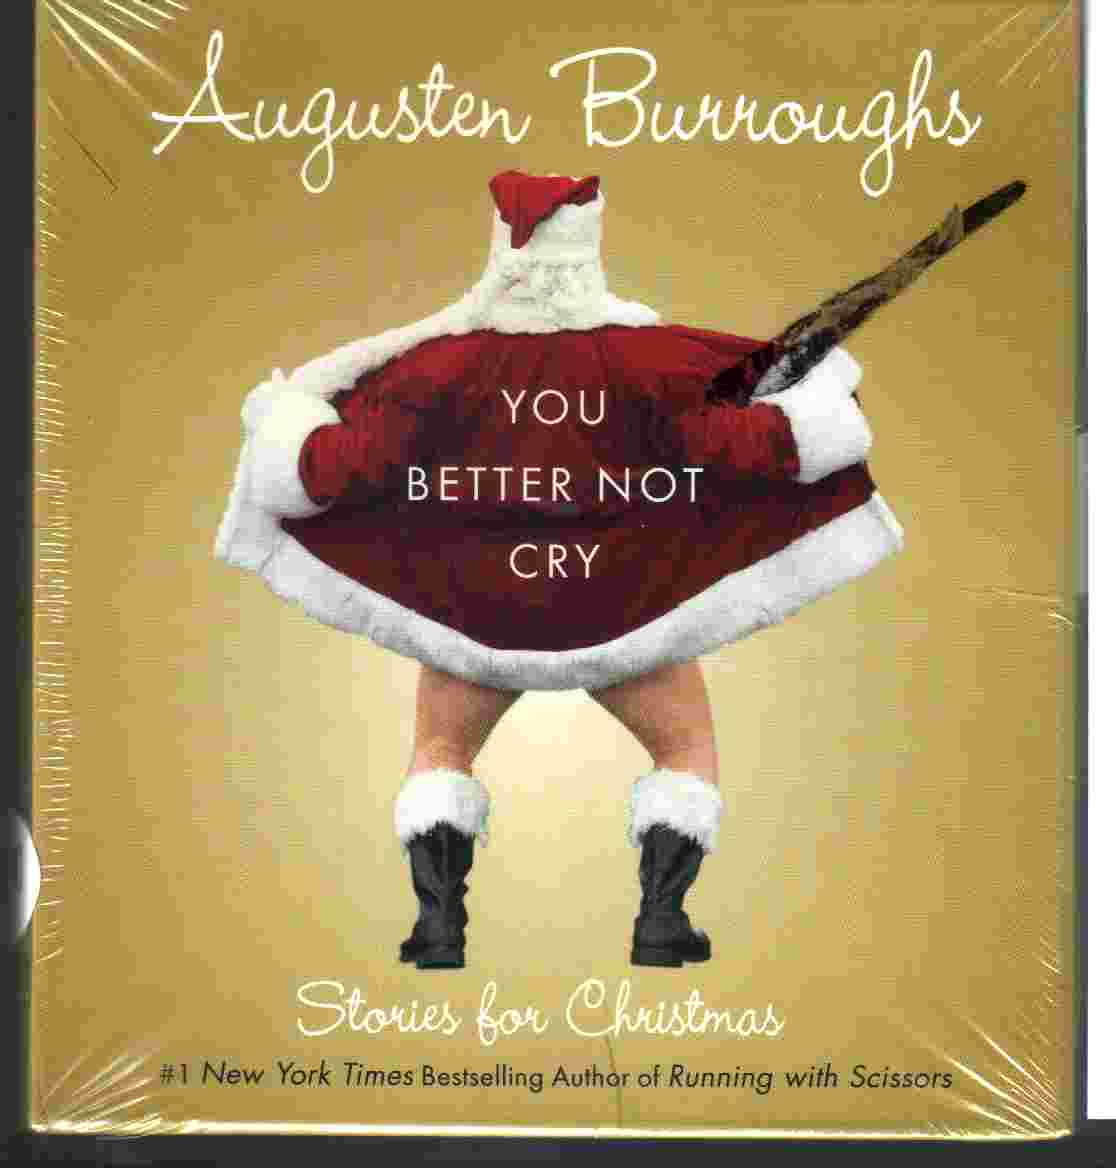 YOU BETTER NOT CRY by Augusten Burroughs